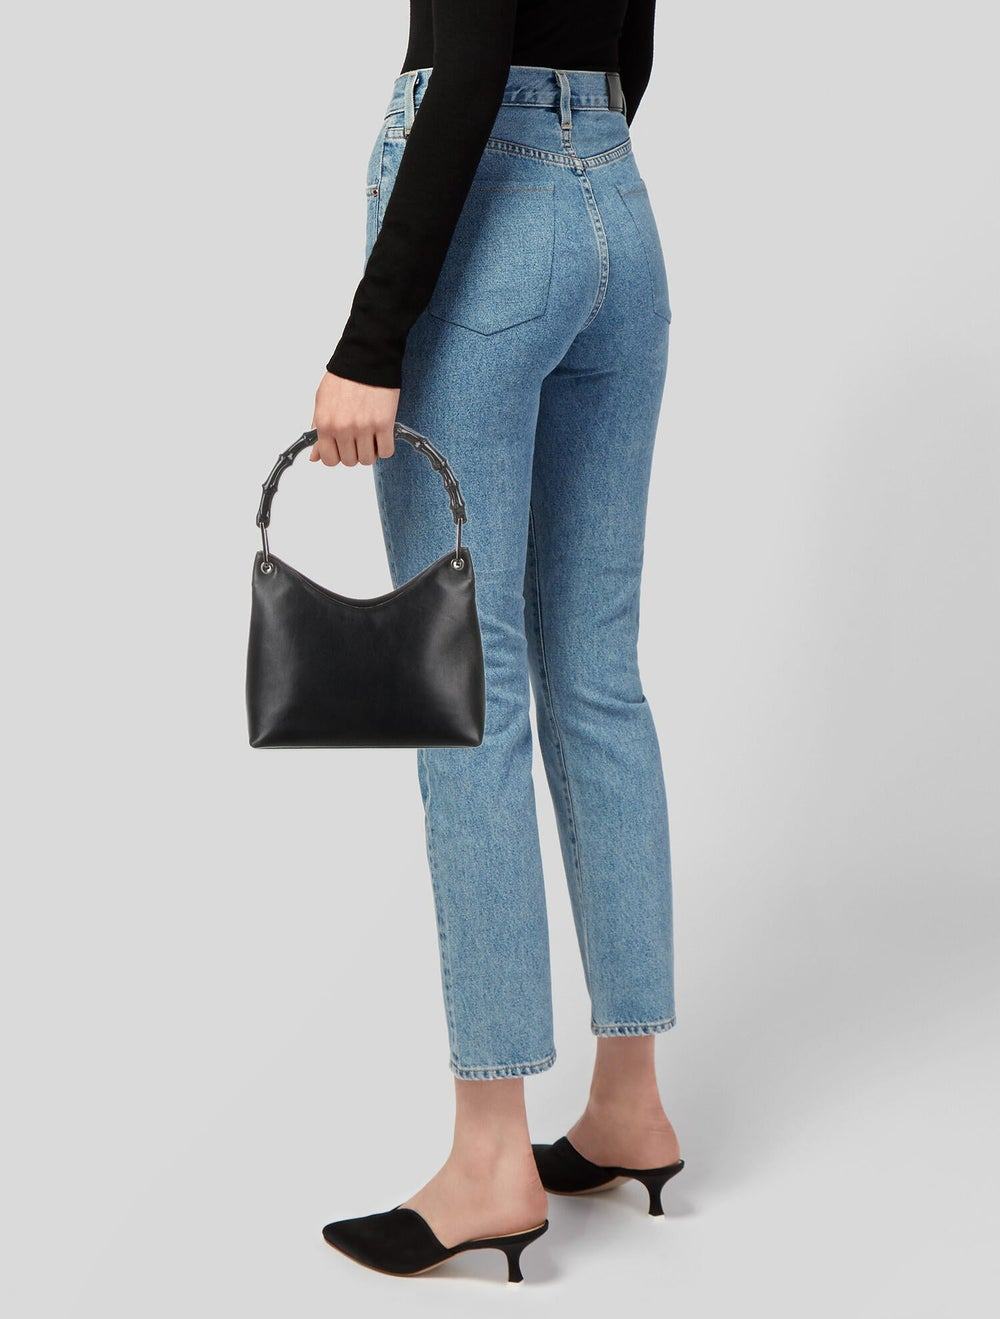 Gucci Bamboo Leather Handle Bag Blue - image 2